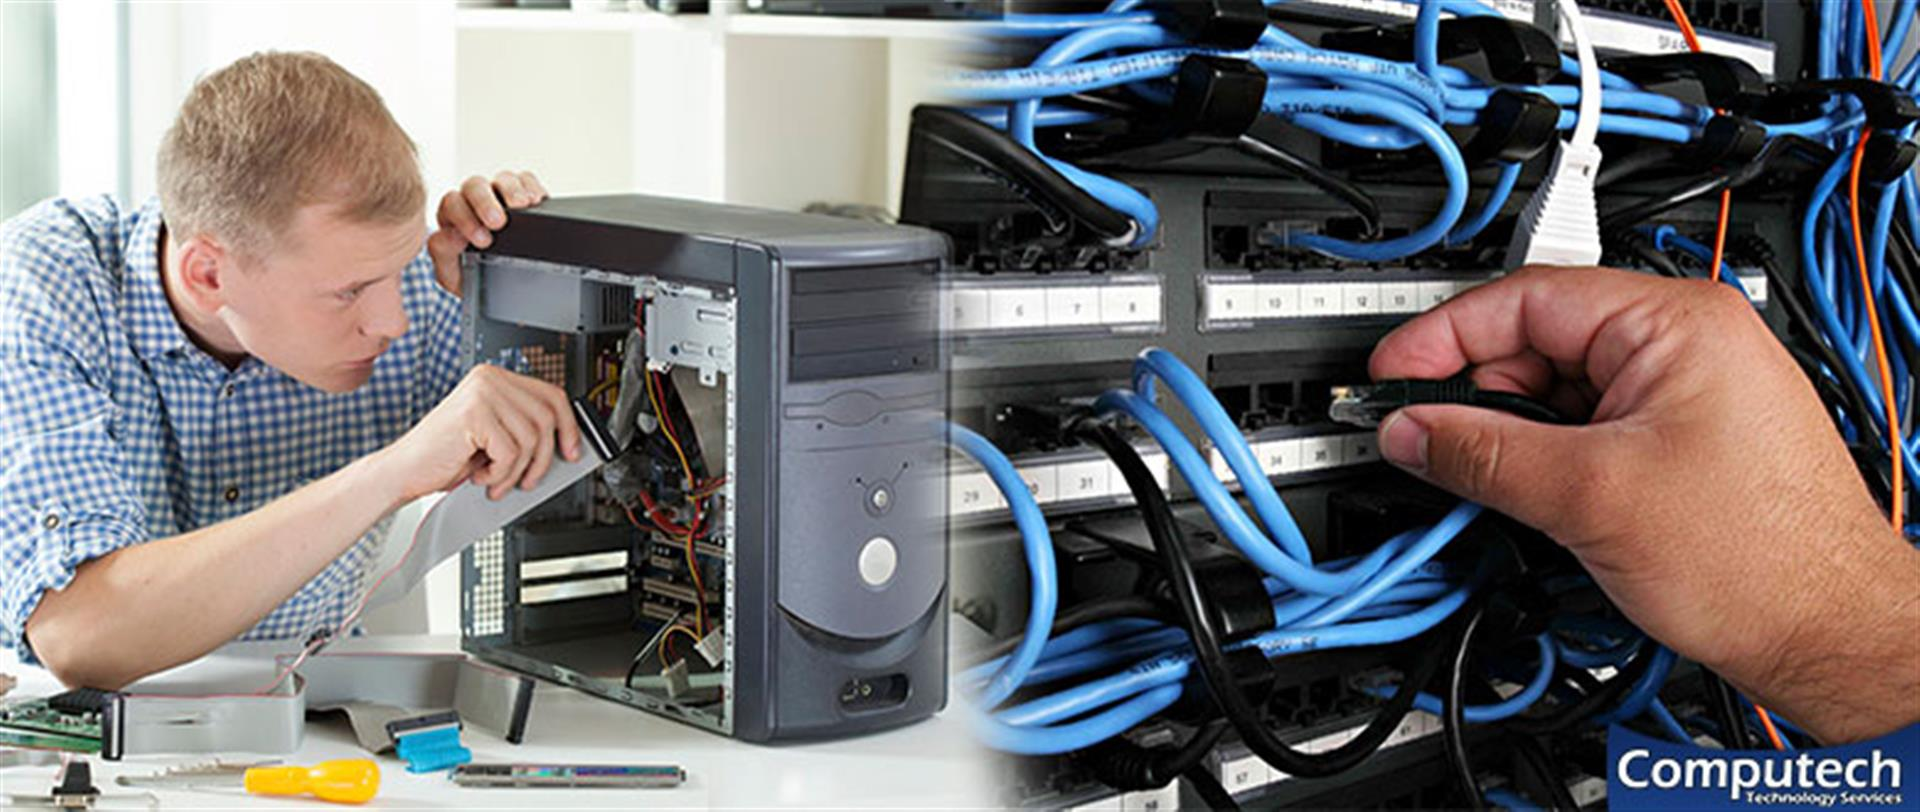 Harrogate Tennessee Onsite Computer & Printer Repairs, Network, Voice & Data Cabling Solutions